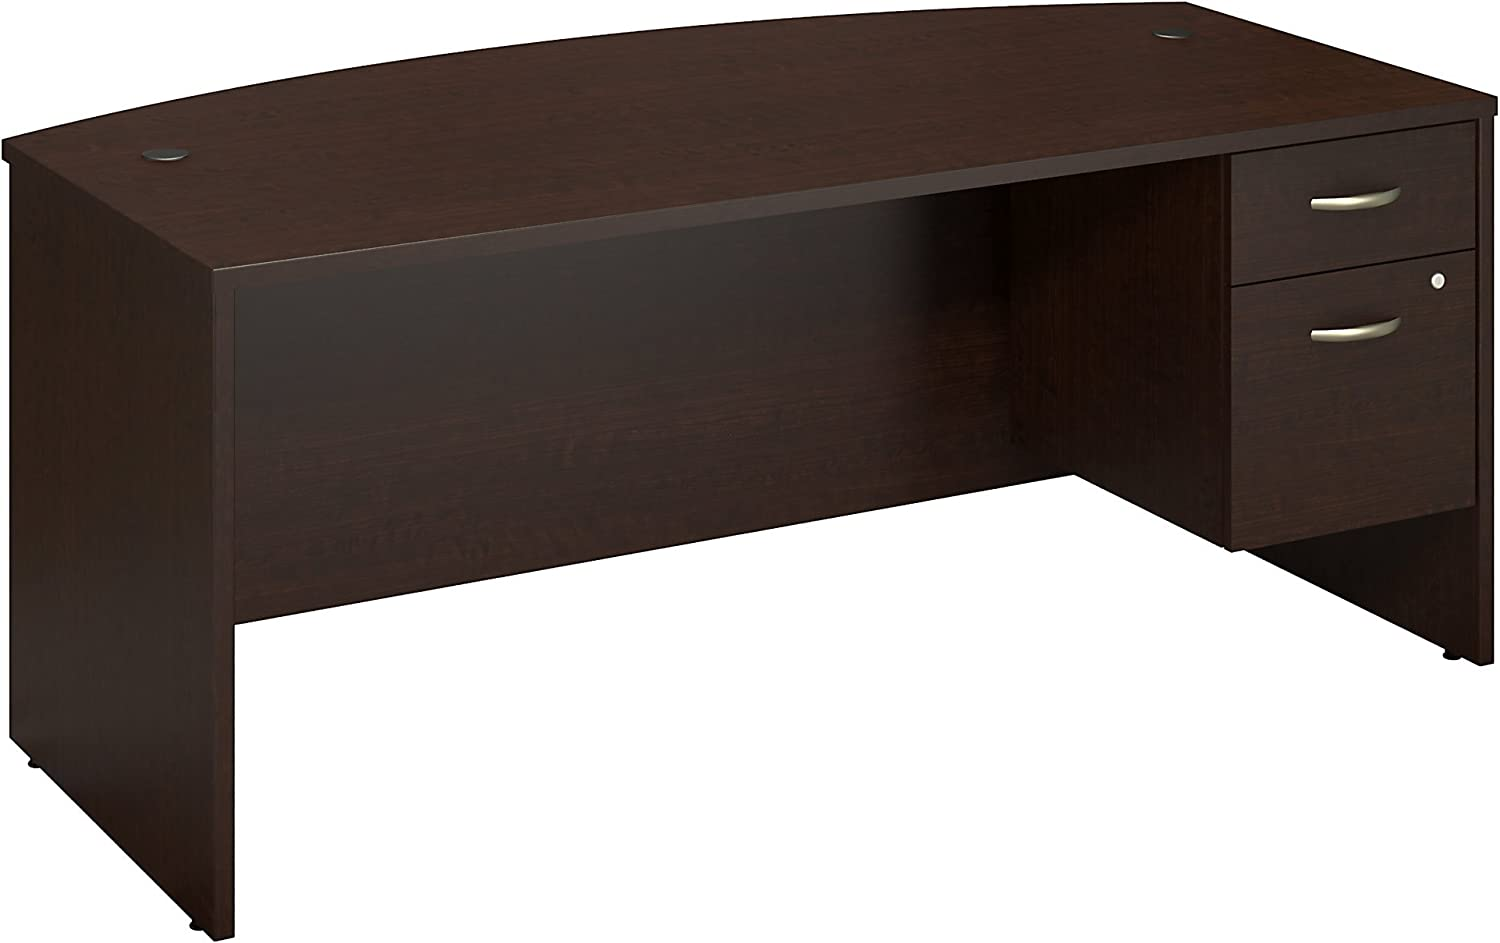 Bush Business Furniture Series C Collection 72W X 36D Bow Front Desk with 3/4 Pedestal in Mocha Cherry